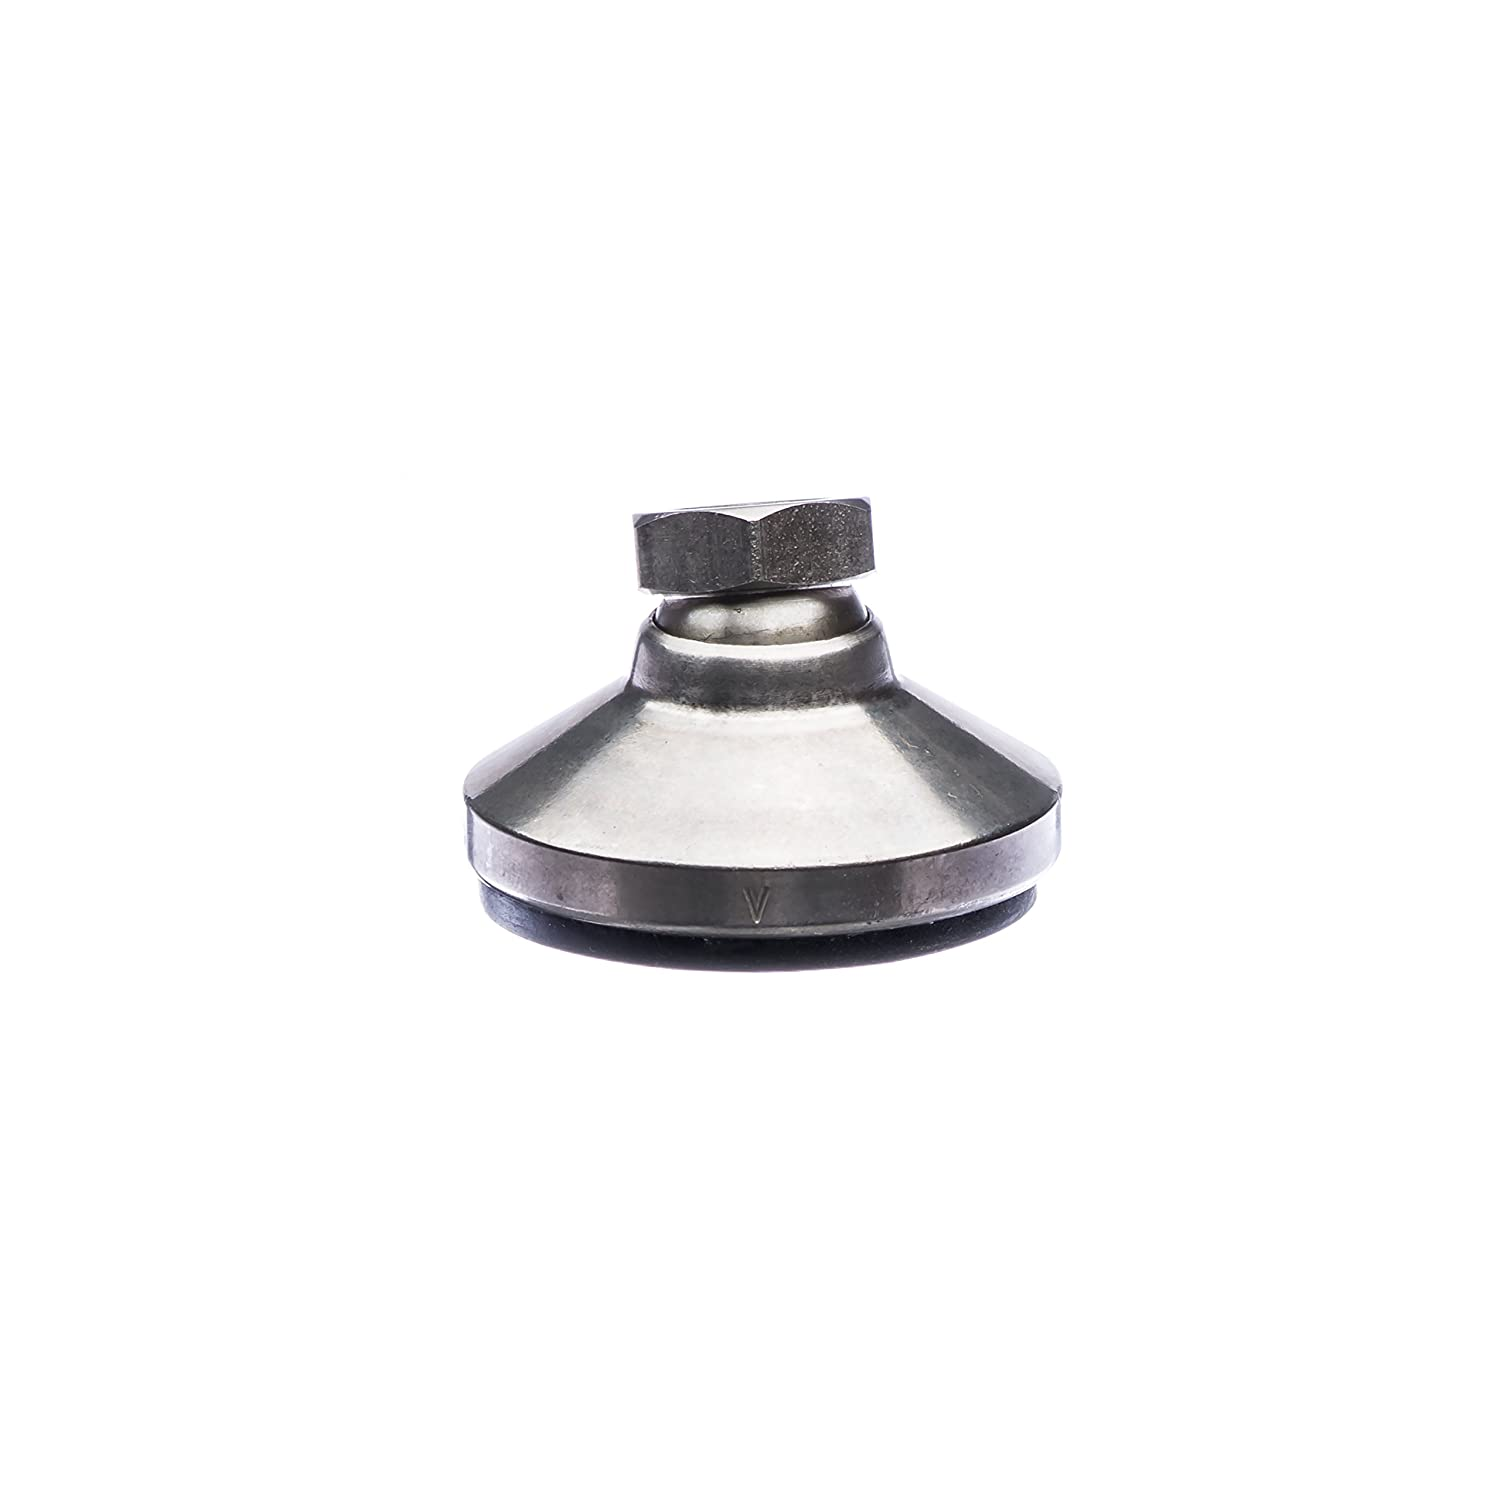 Vlier HVESSP306B High Value Series Leveling Device 1//2-13 Thread Size 1 1//2 Long Stainless Steel